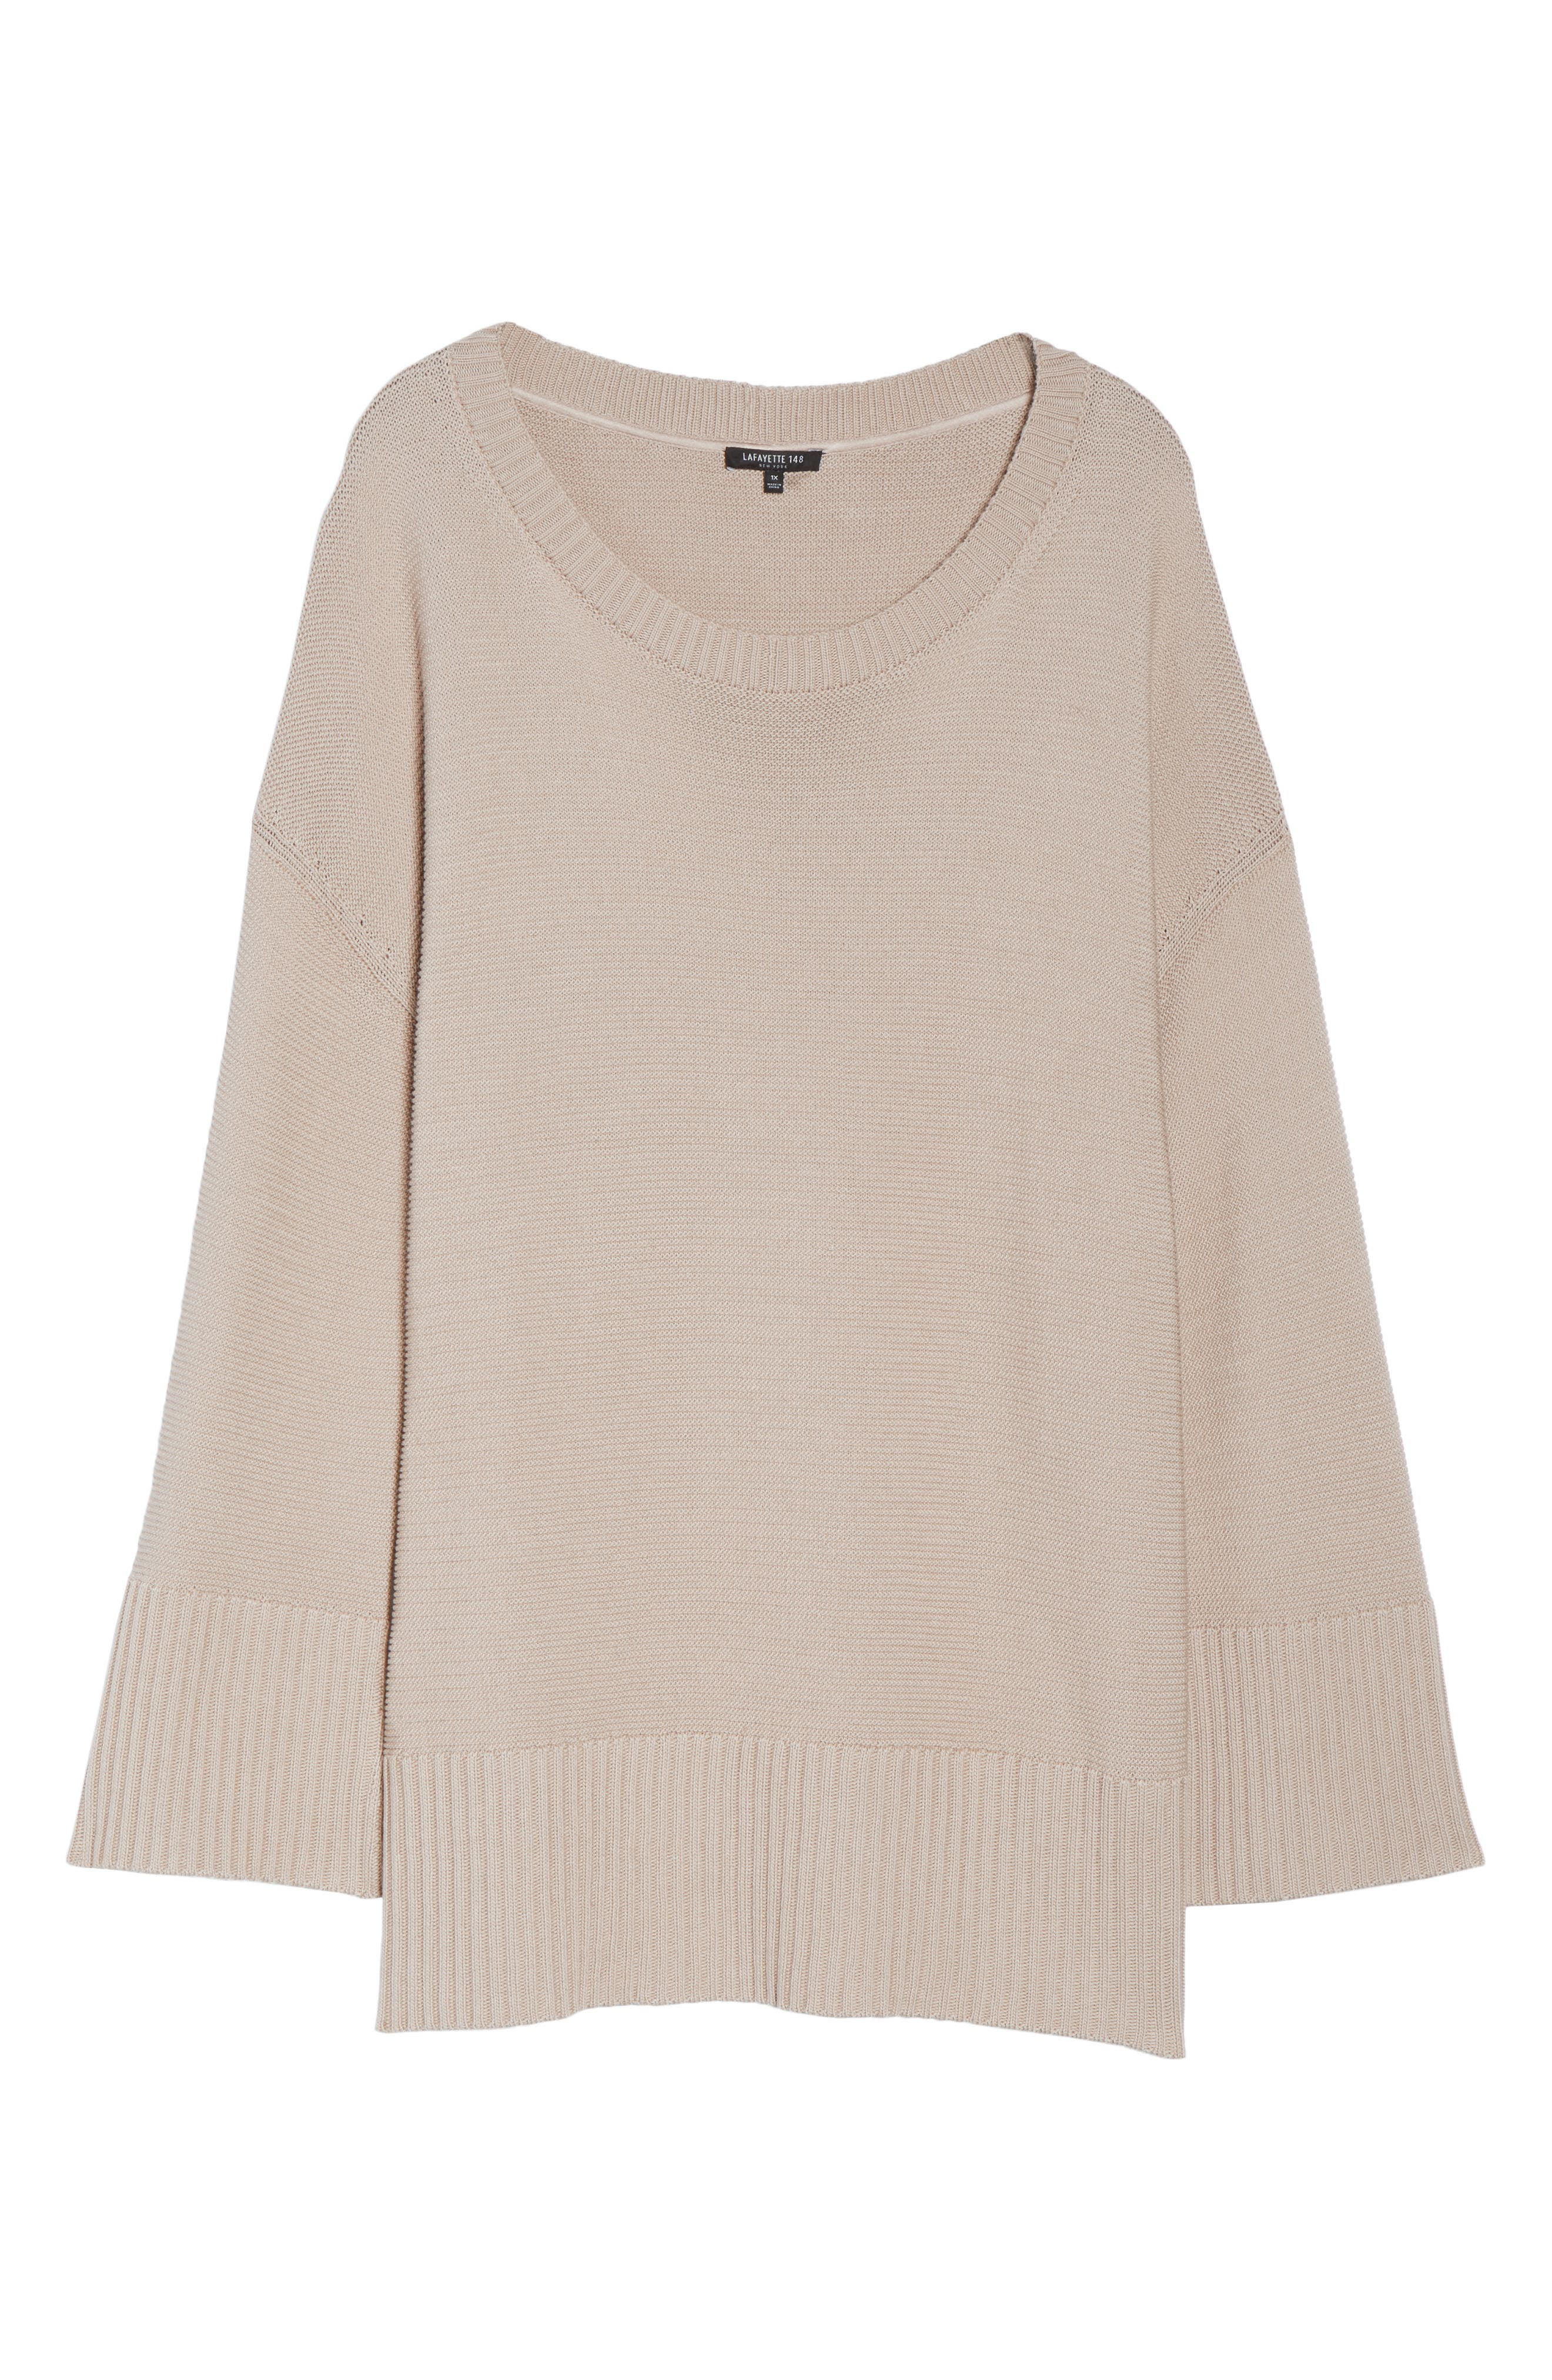 Lafayette 148 Silk and Cotton Sweater,                             Alternate thumbnail 6, color,                             259